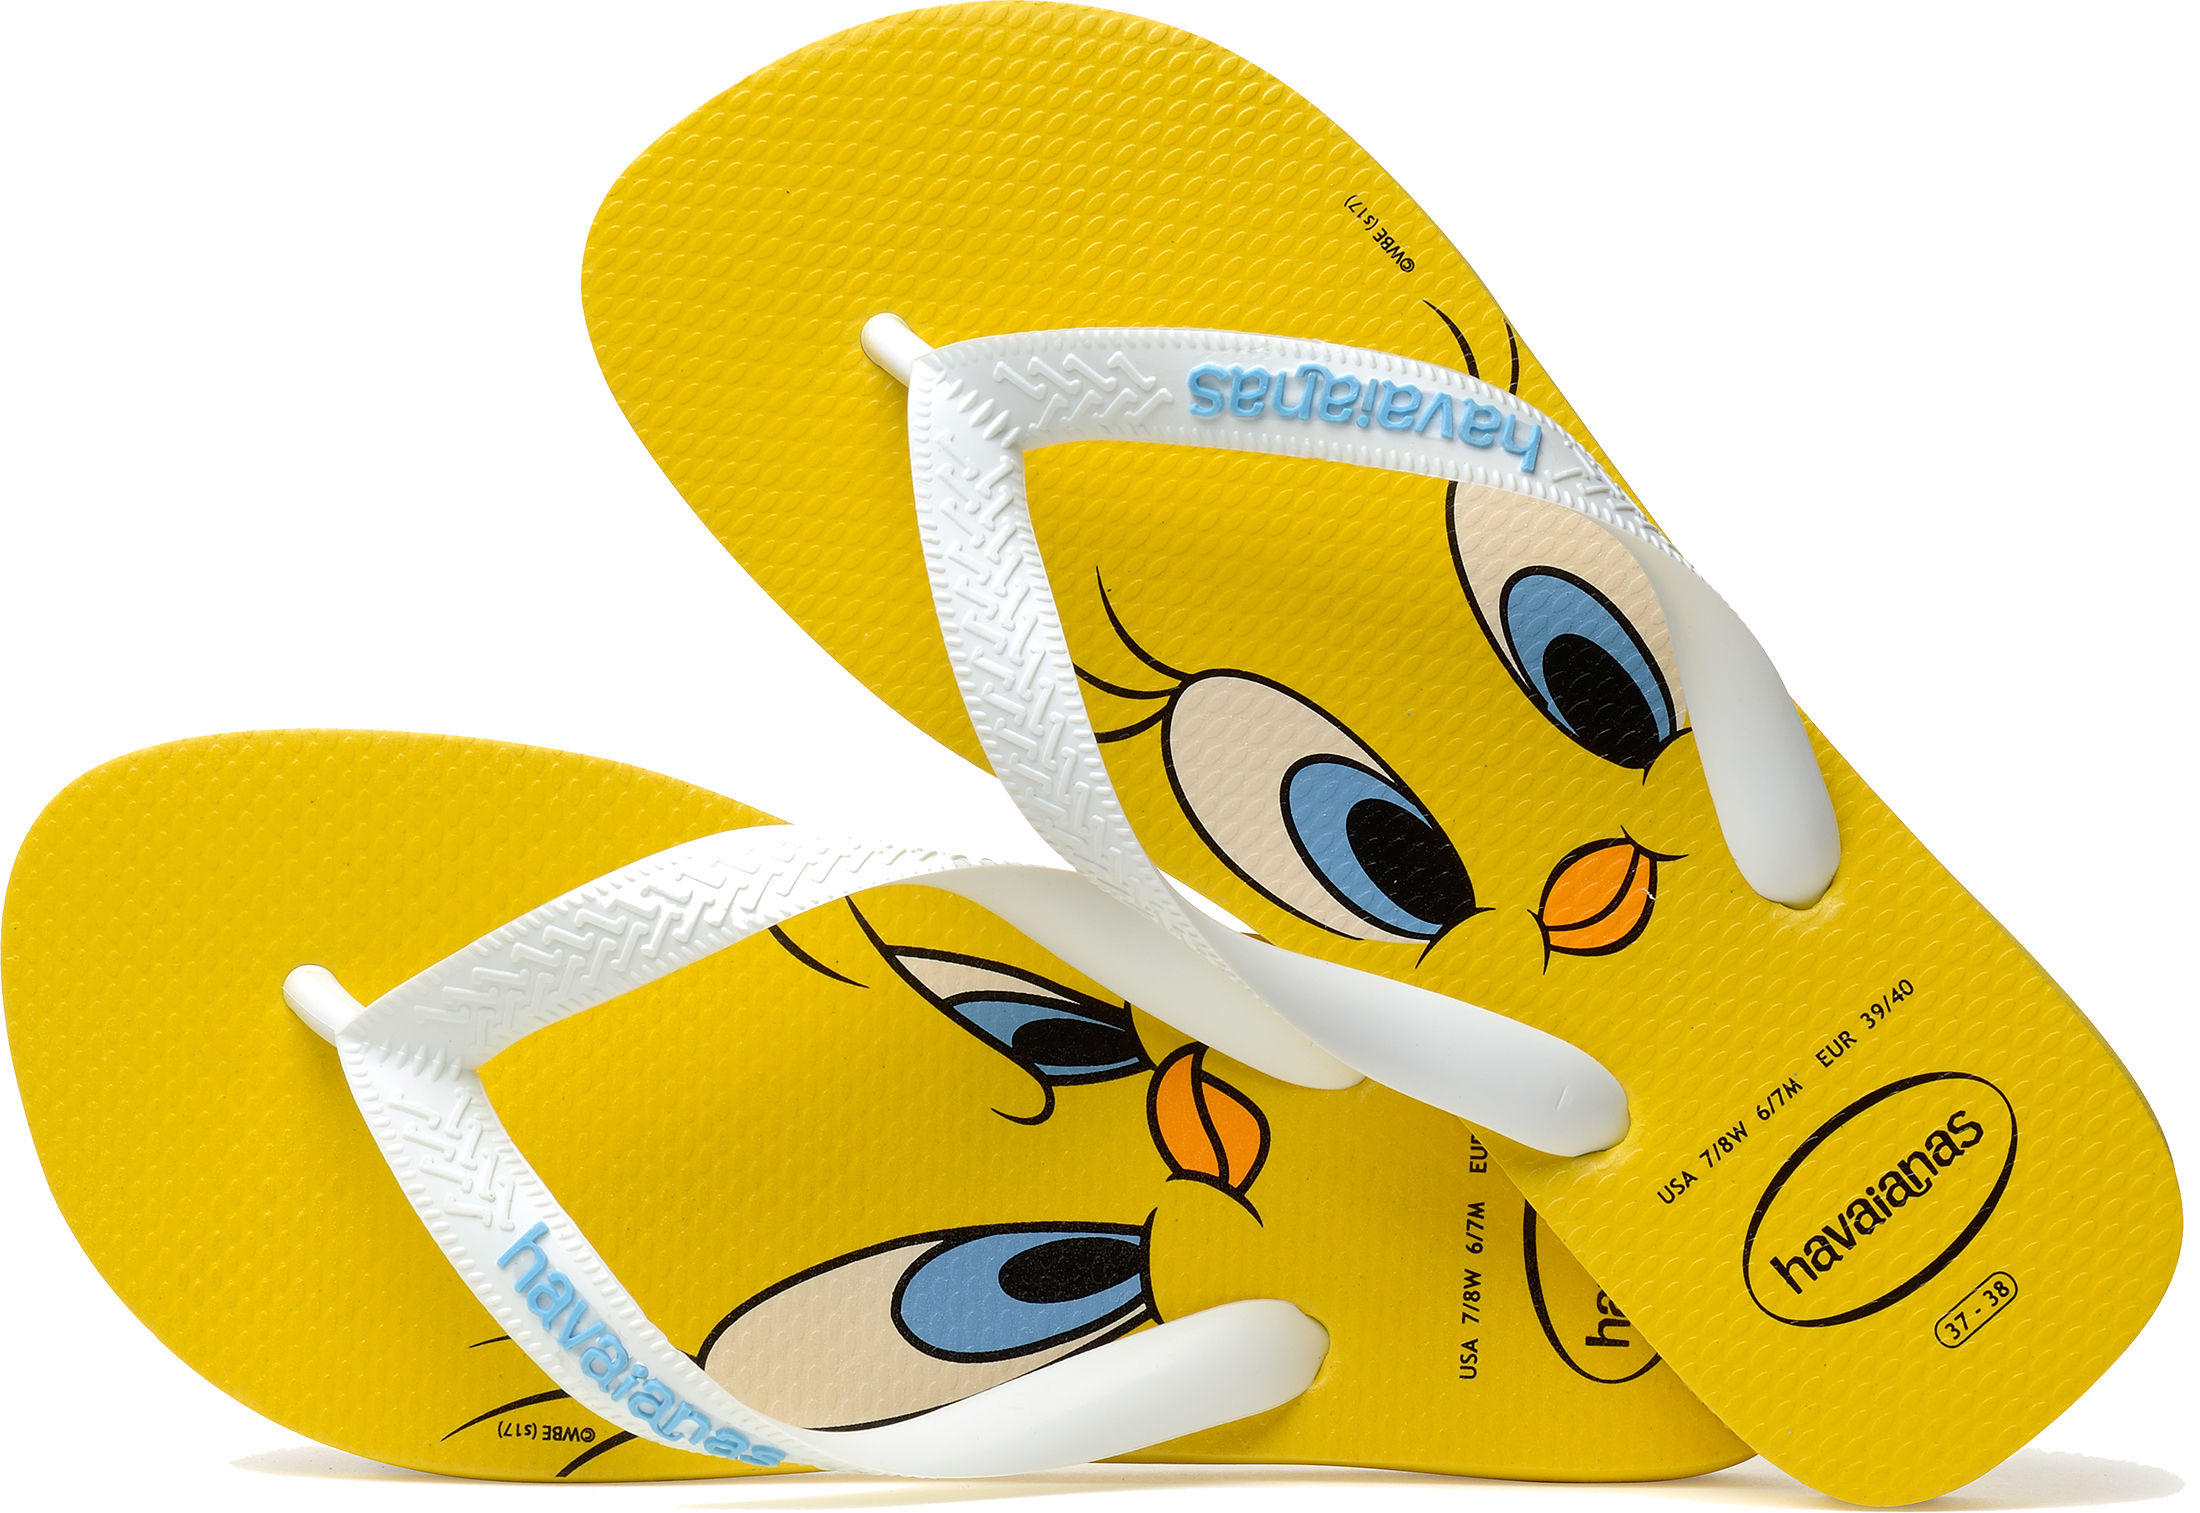 d0133eb9a98791 Havaianas Looney Tunes Womens Yellow White Rubber Flip Flops - 35-36. About  this product. Picture 1 of 5  Picture 2 of 5  Picture 3 of 5  Picture 4 of 5